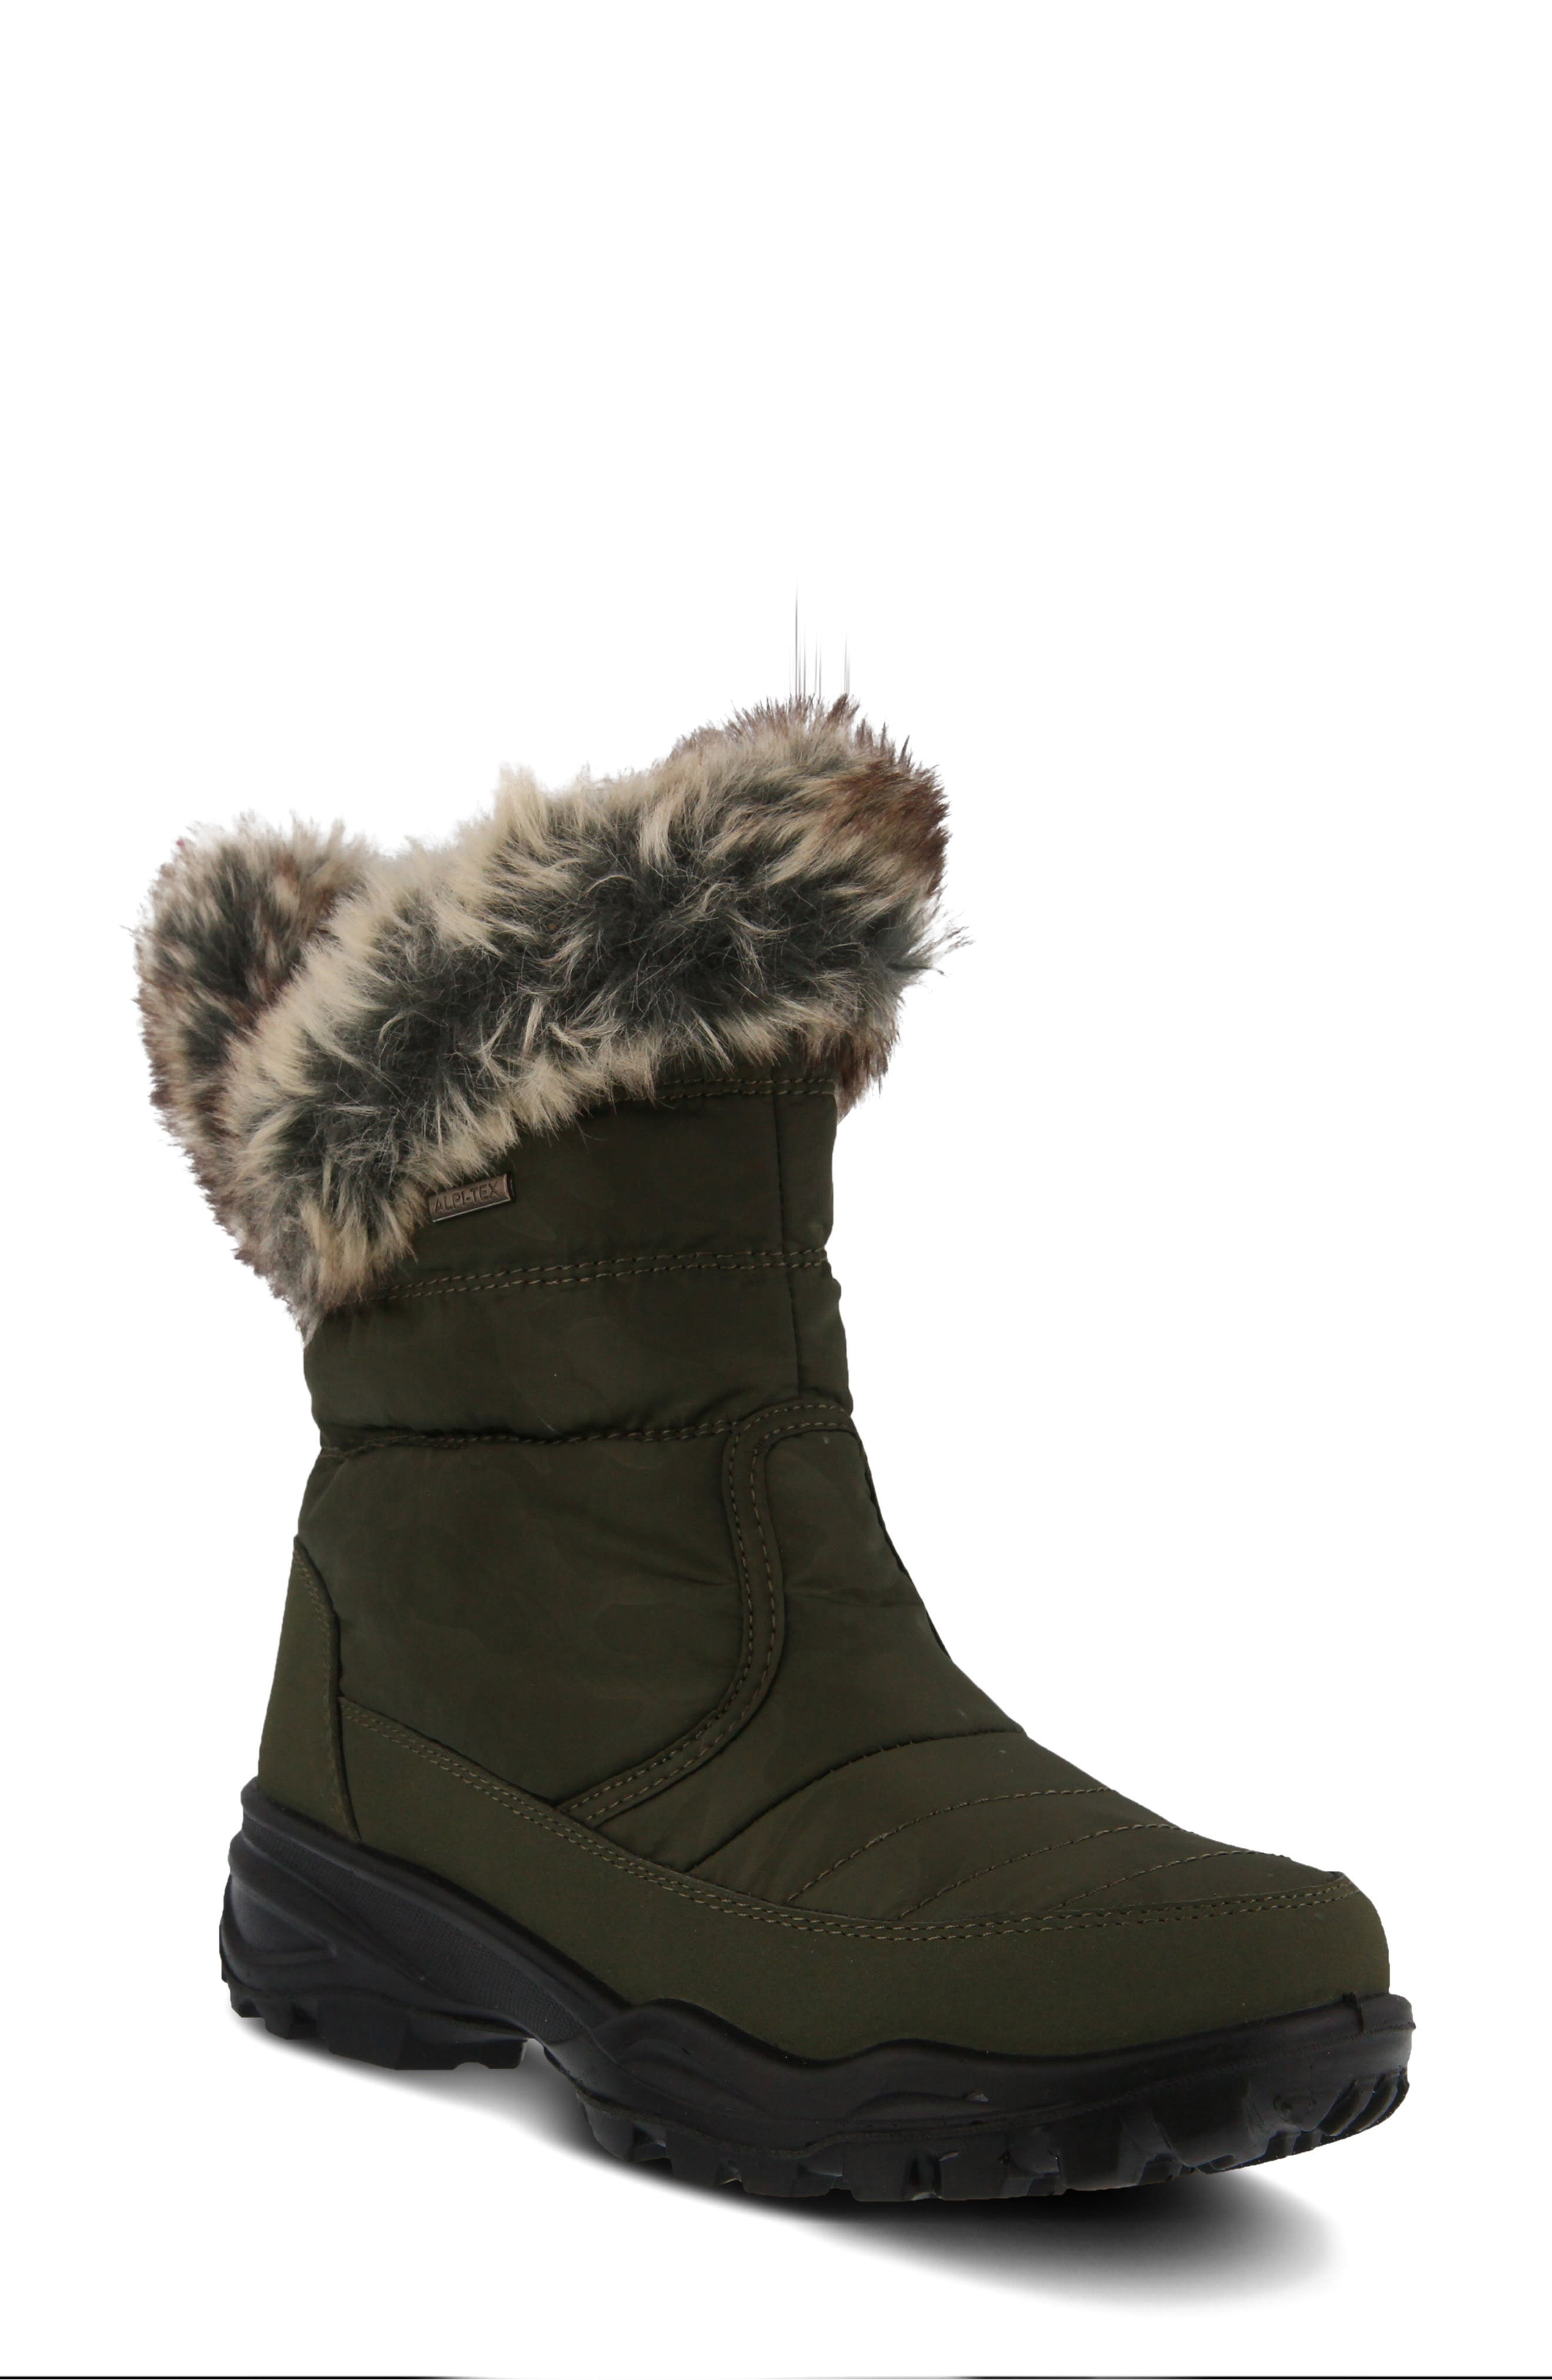 Spring Step Korine Waterproof Faux Fur Bootie - Green